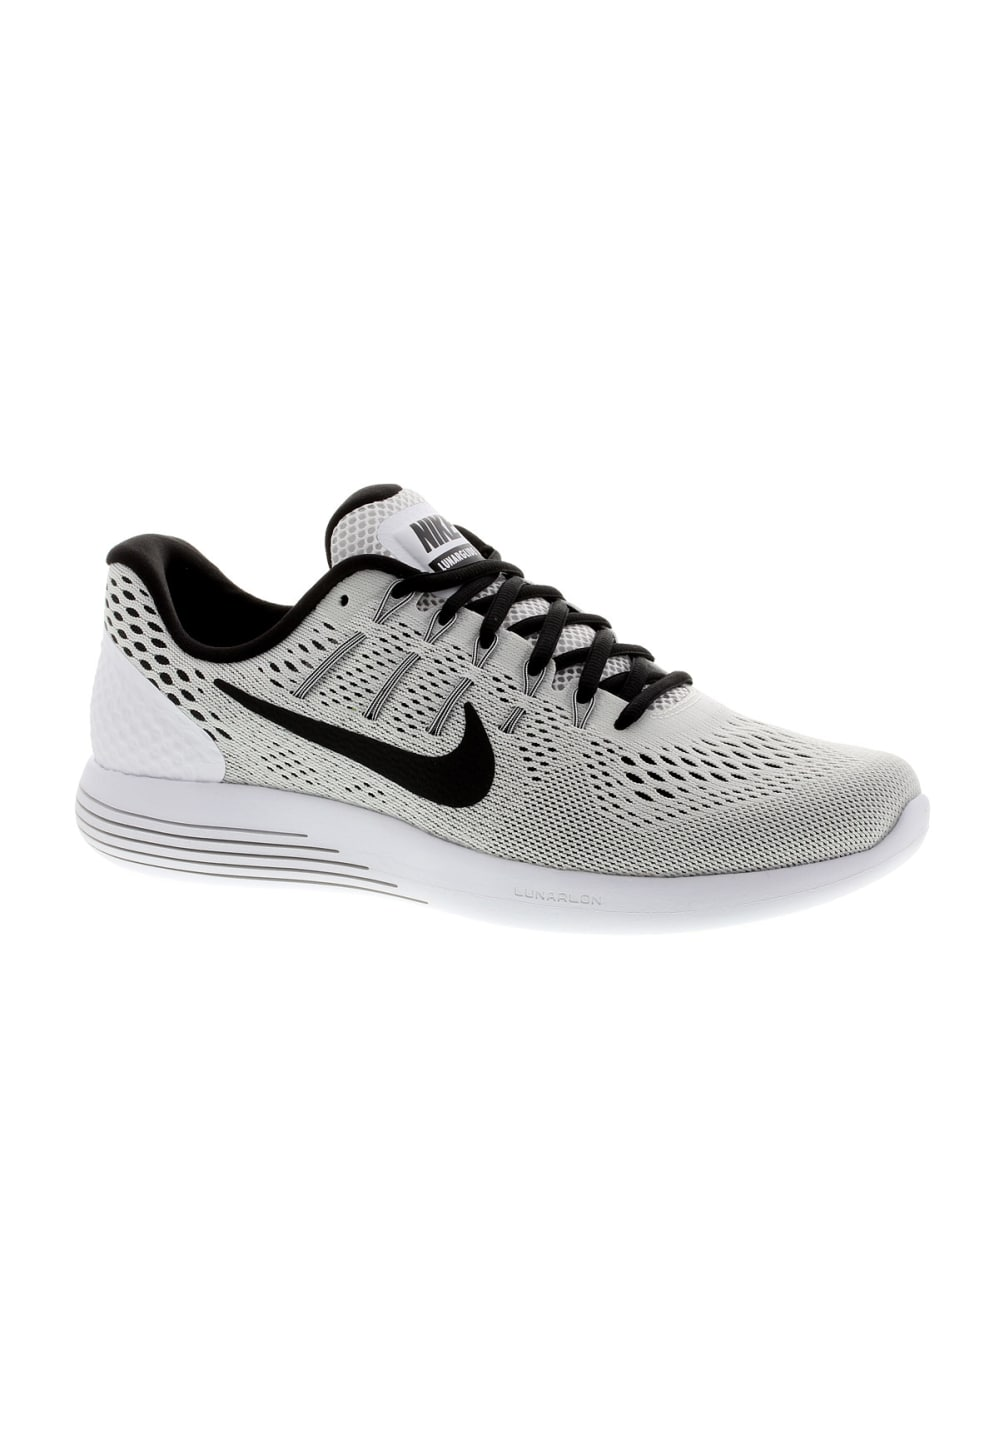 5743ccfe8658 Nike Lunarglide 8 - Running shoes for Women - Grey